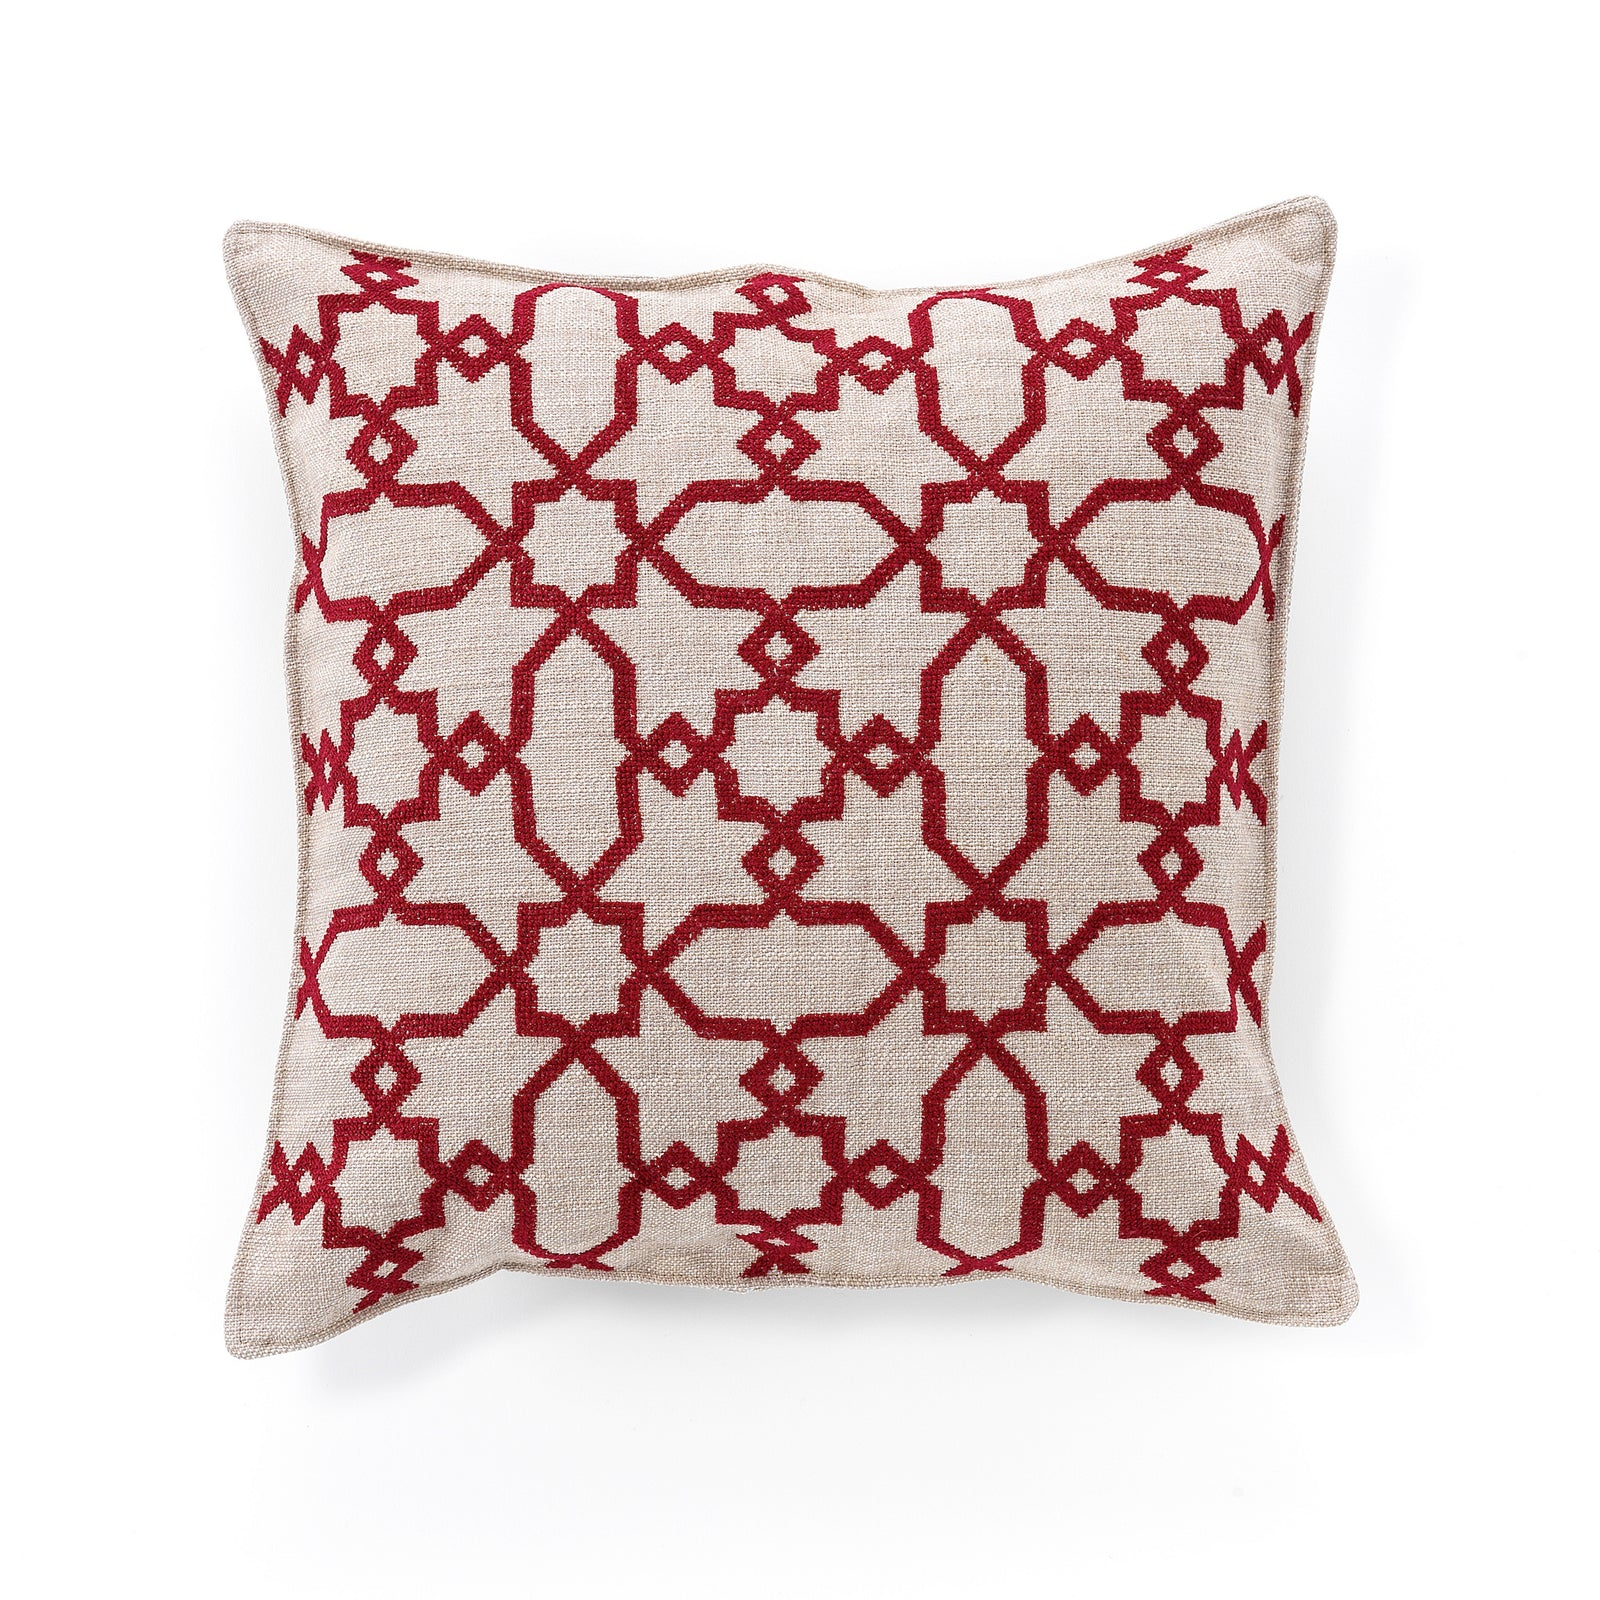 Red Cushions & Covers for Children for